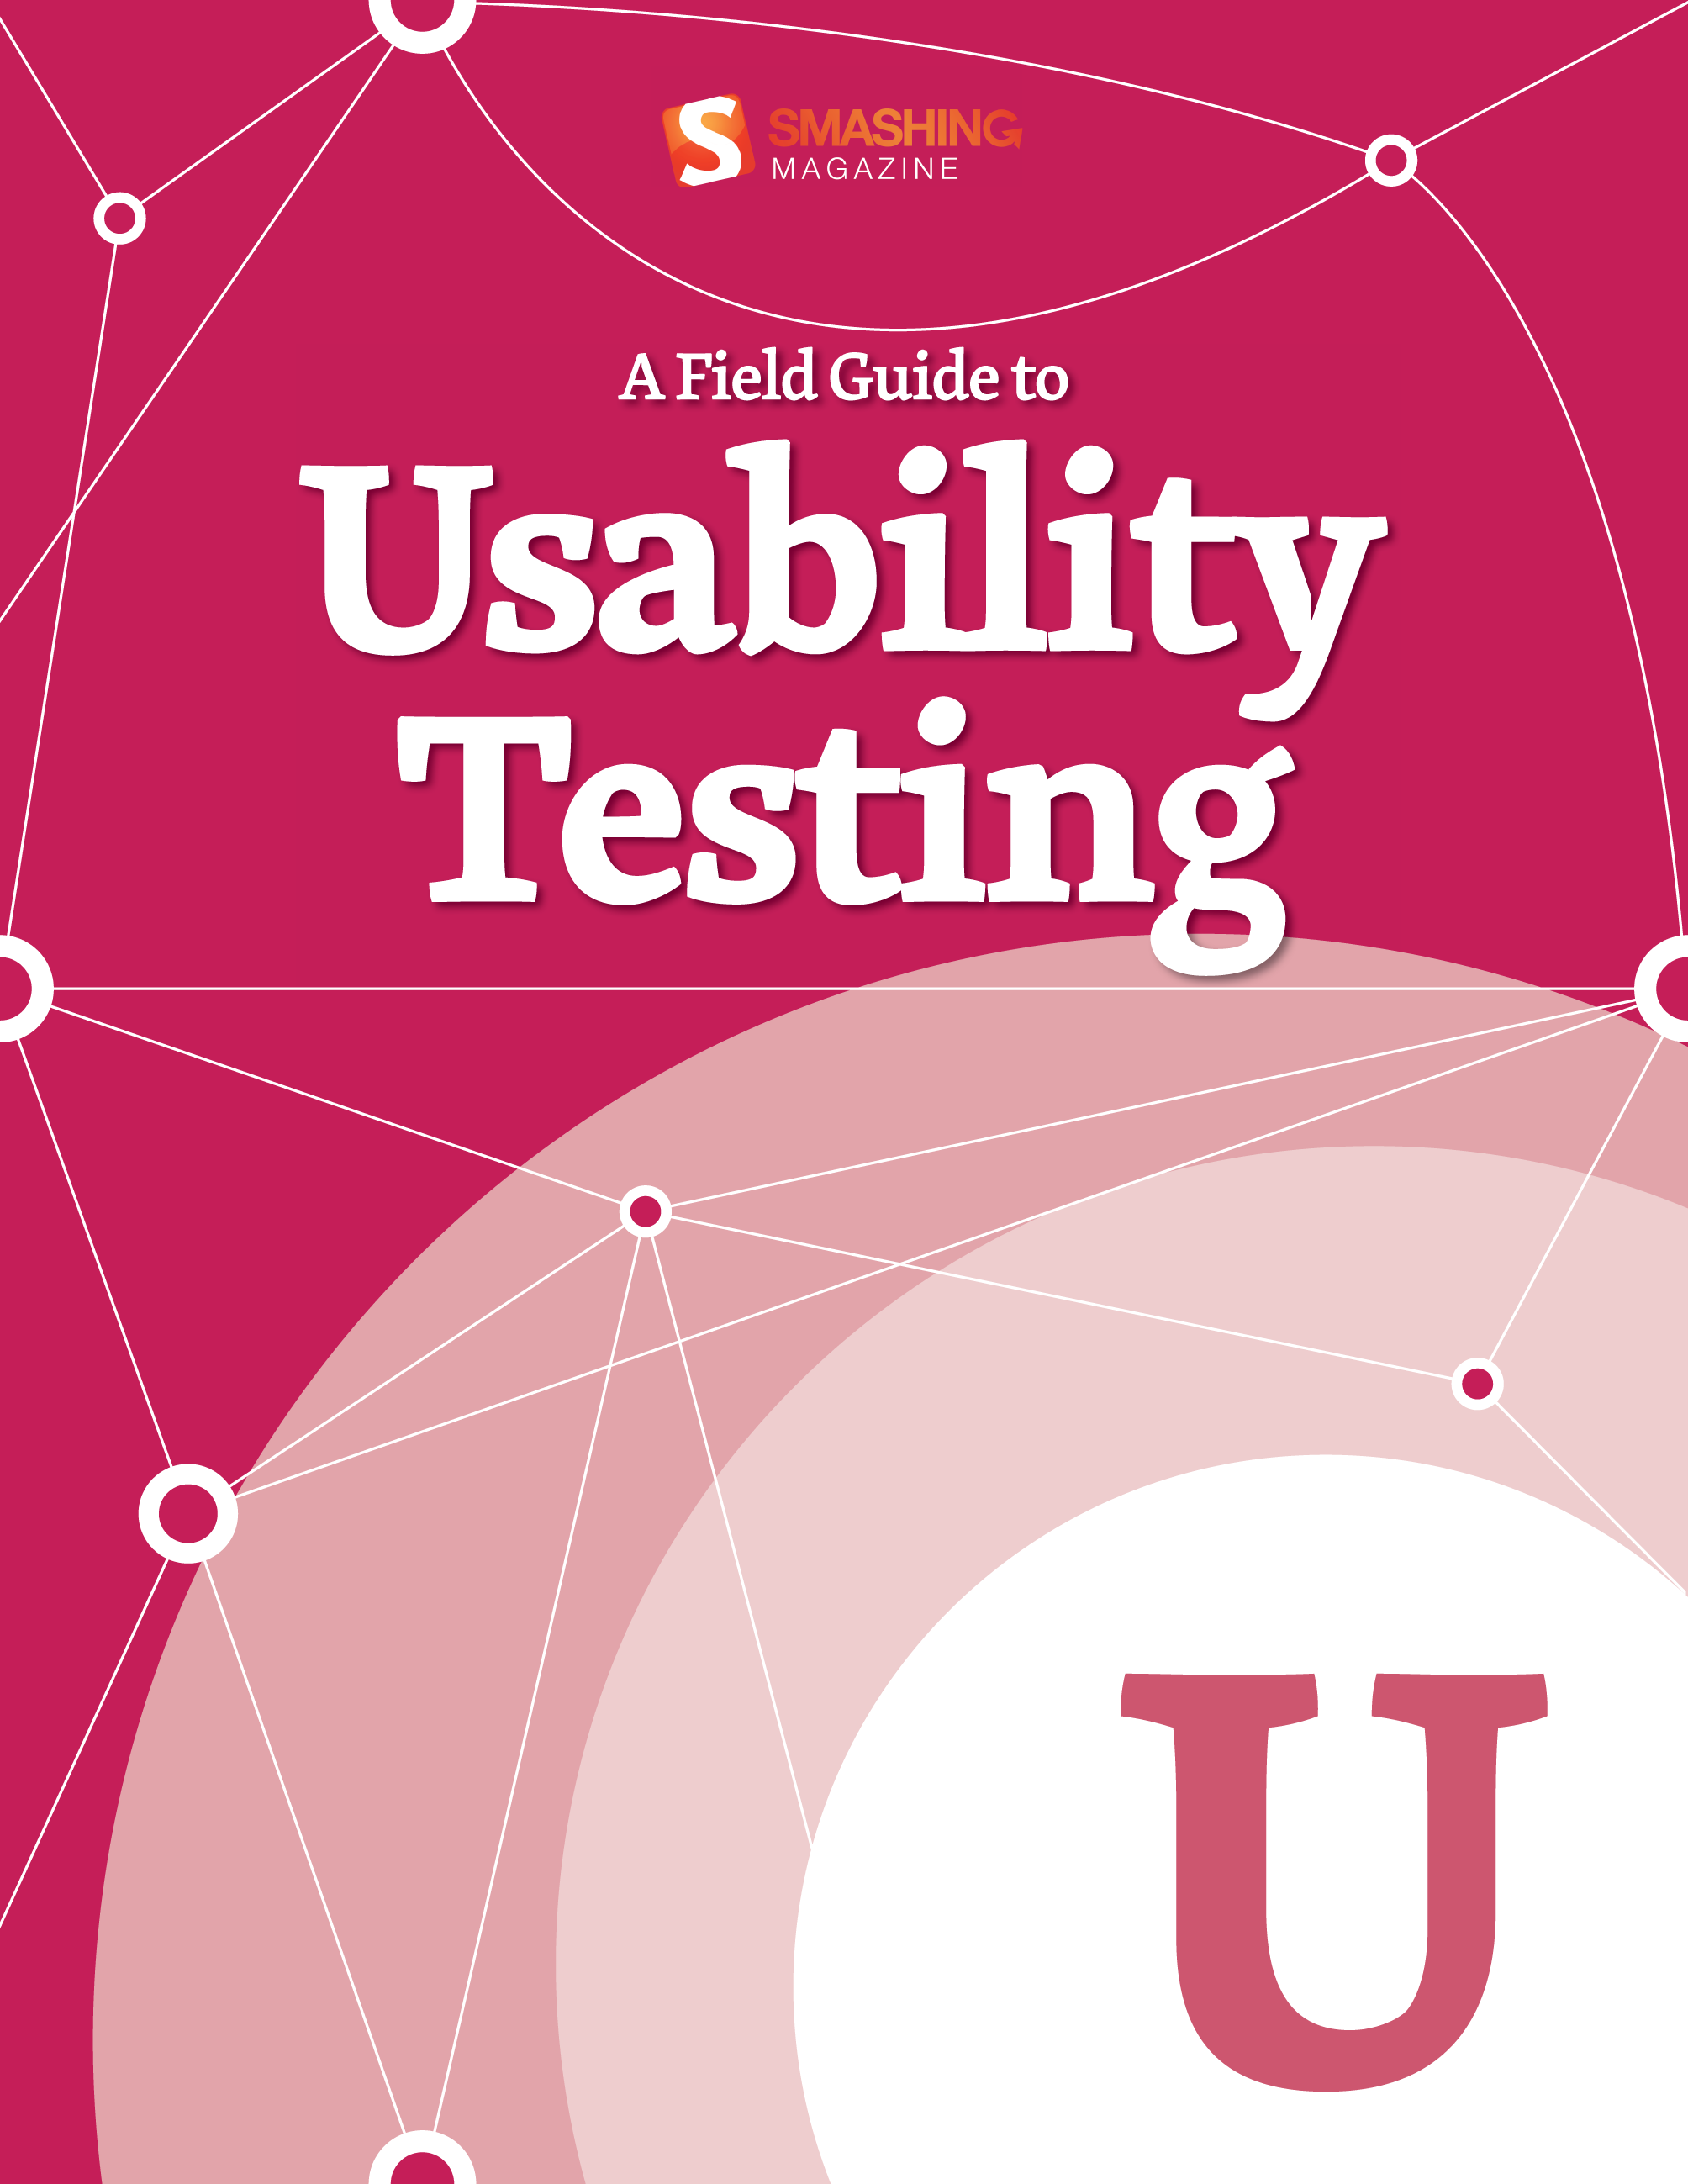 A Field Guide To Usability Testing By: Smashing Magazine